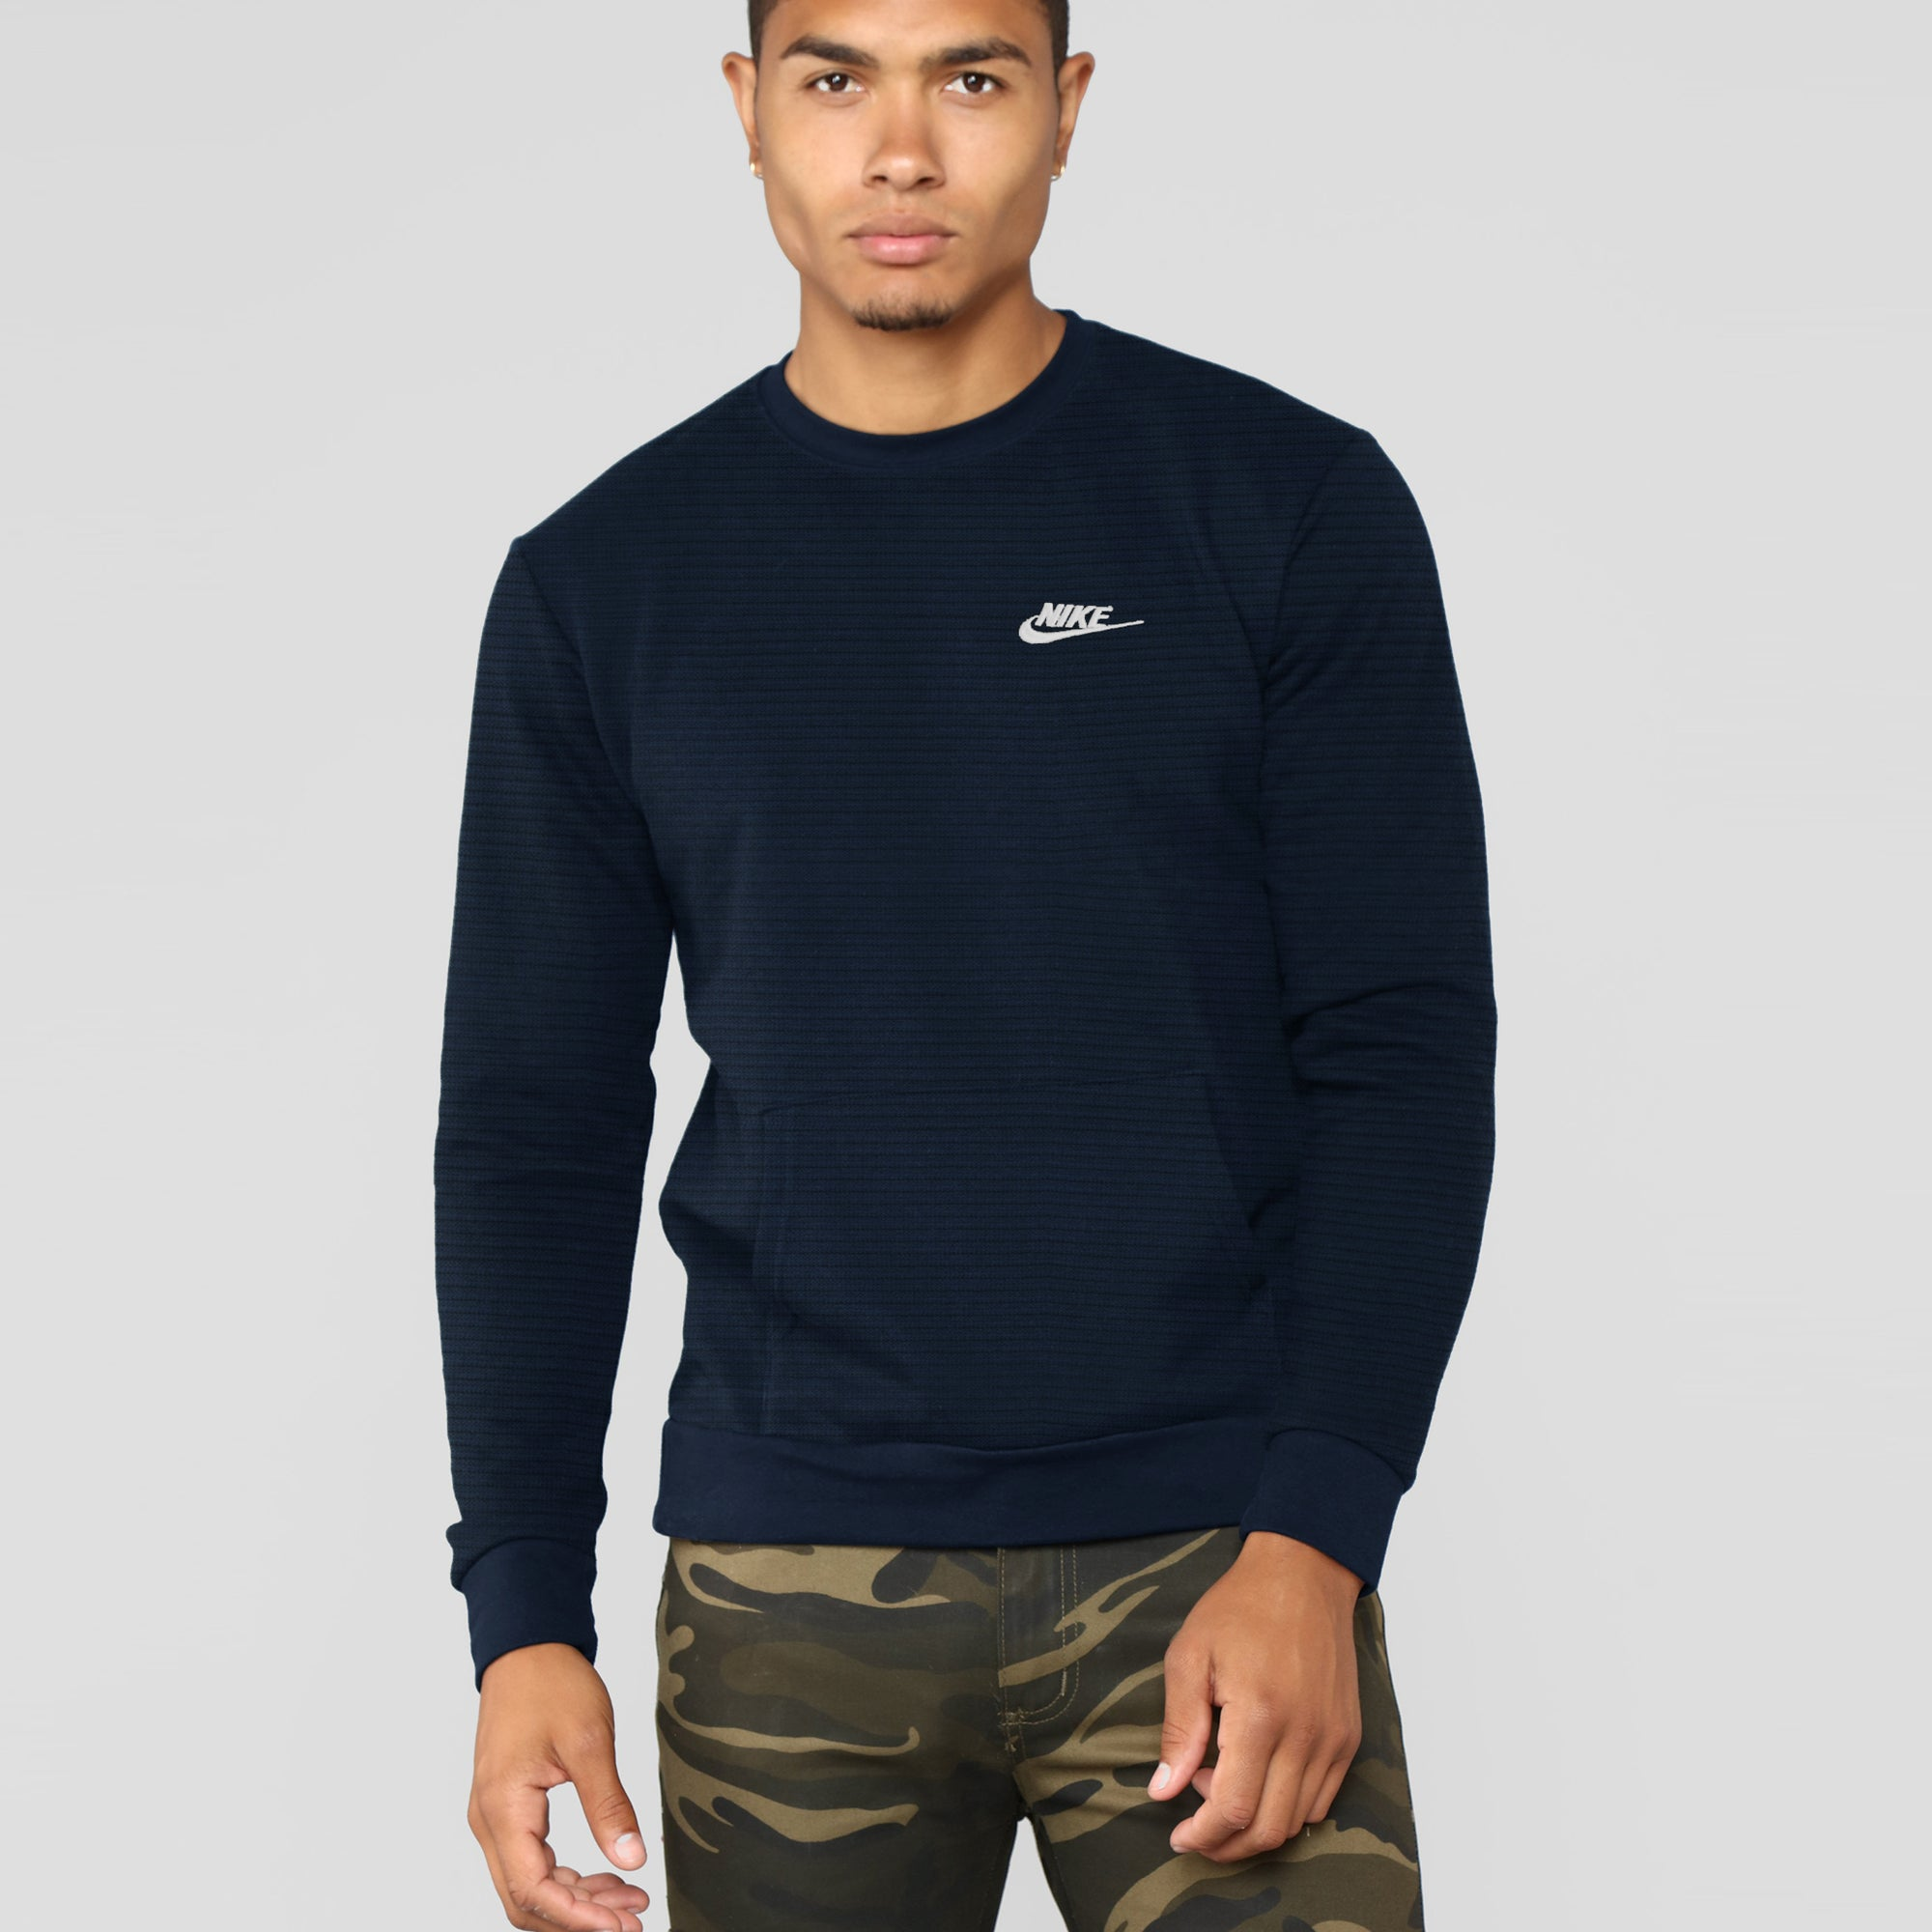 NK Crew Neck Thermal Sweatshirt For Men-Dark Navy-SP1335